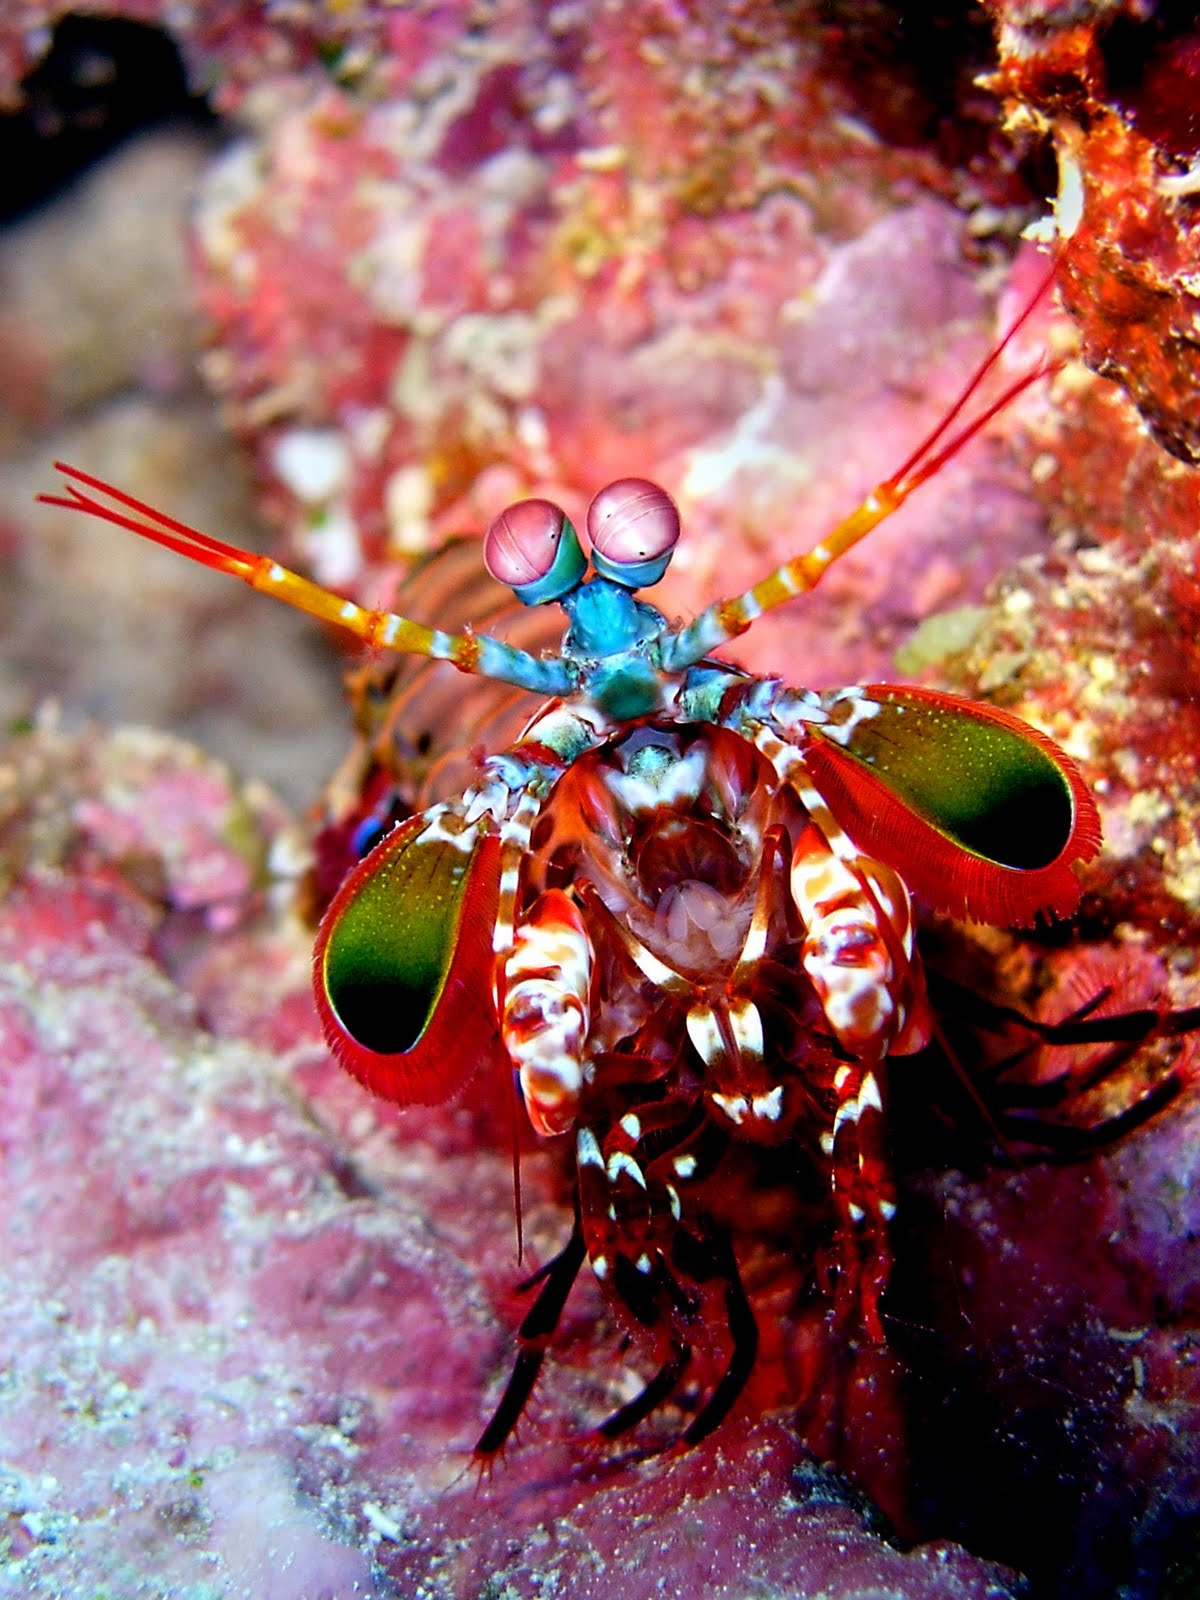 Humans only have three color channels in which we can see. The mantis shrimp has twelve channels, seeing colors we couldn't even dream possible.